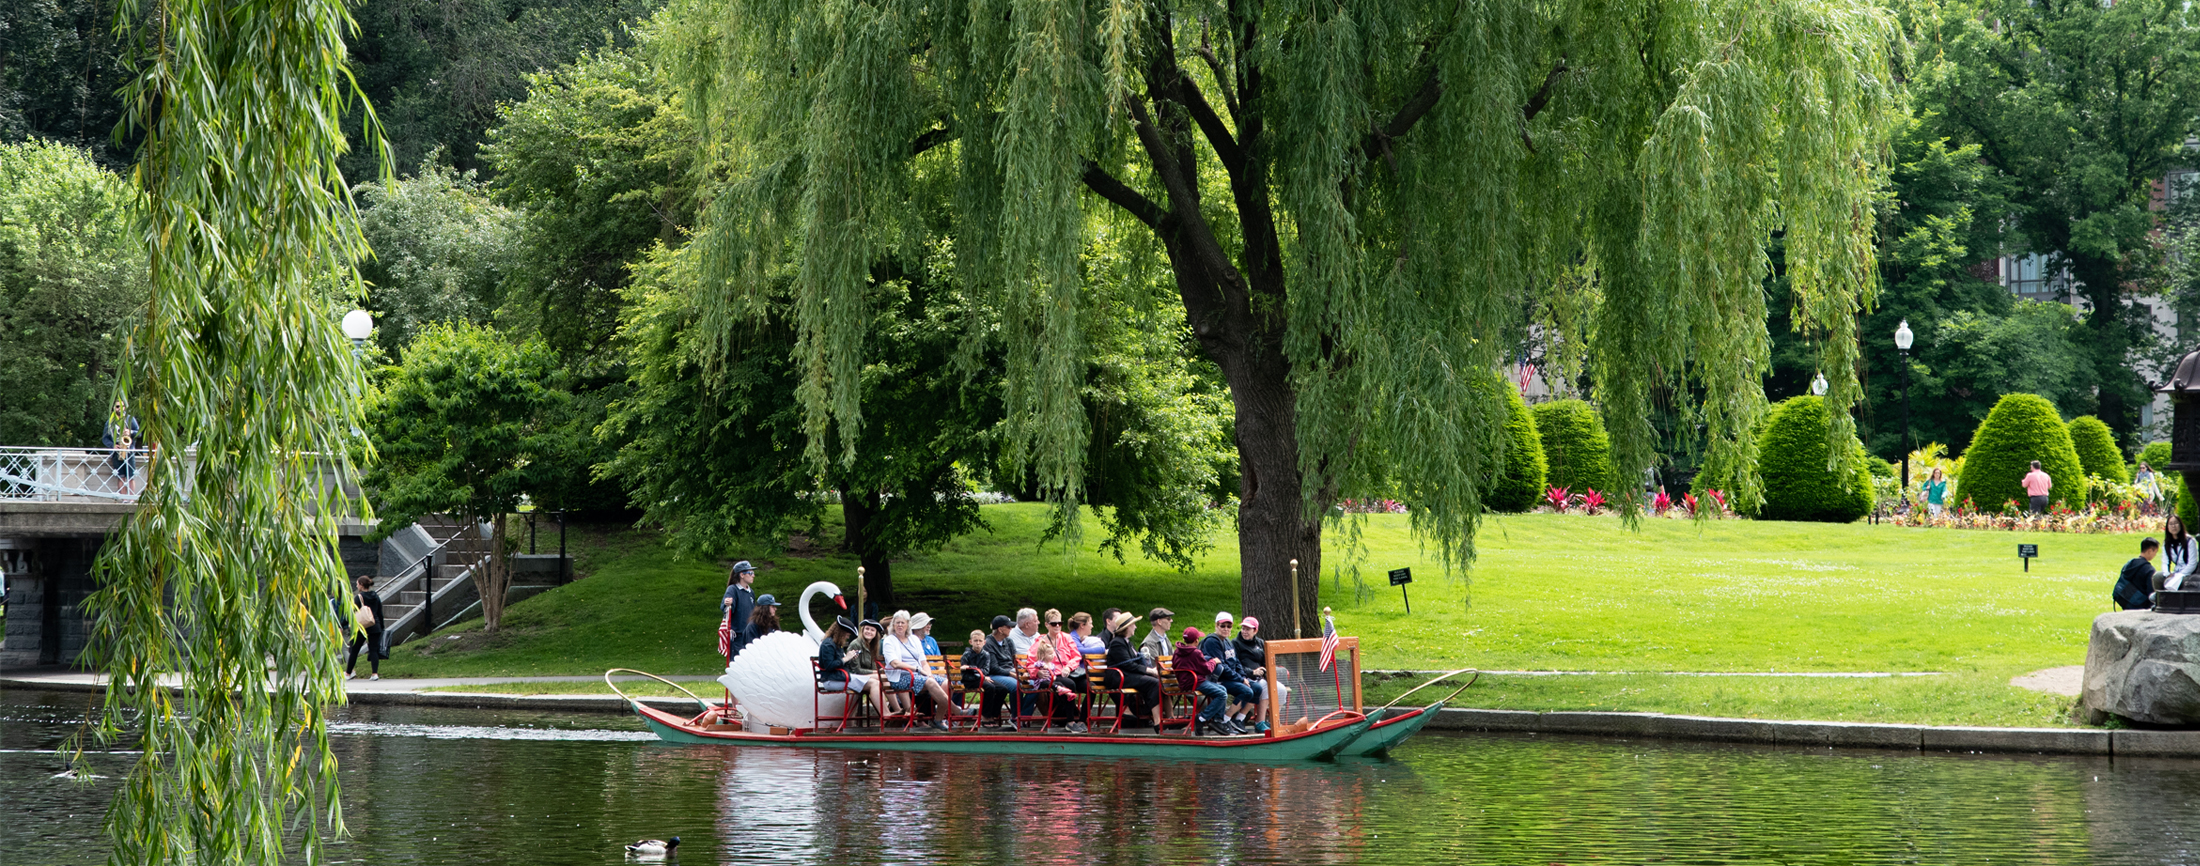 Boston Has Taken The Top Spot In The U.S. News U0026 World Reportu0027s 2018 List  Of U201cBest Summer Vacations In The USAu201d. The List Ranks Destinations Based On  A ...